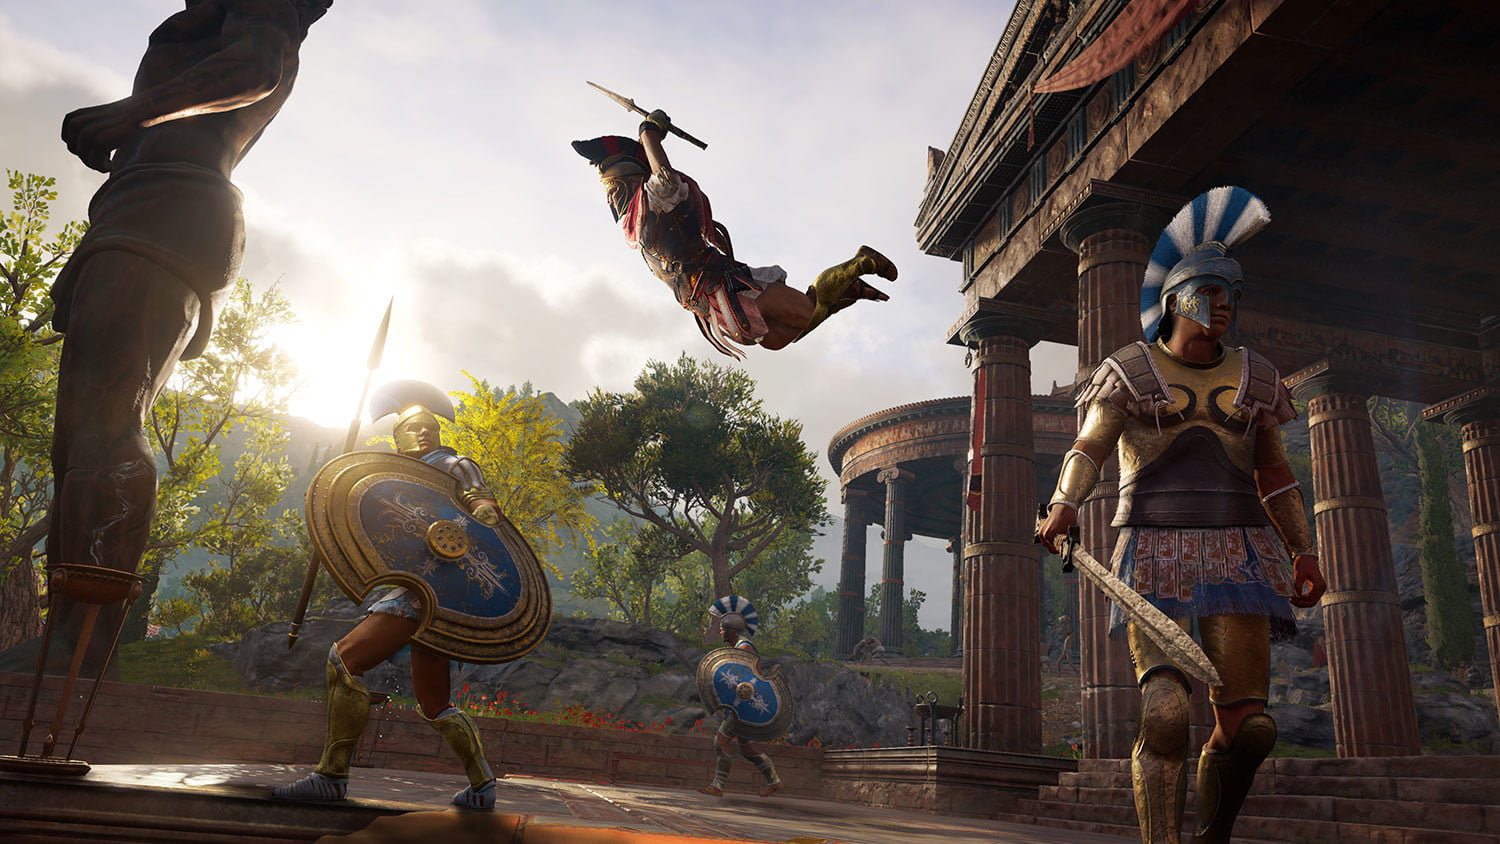 GLAAD Awards adds Assassin's Creed Odyssey as a Queer Inclusive video game